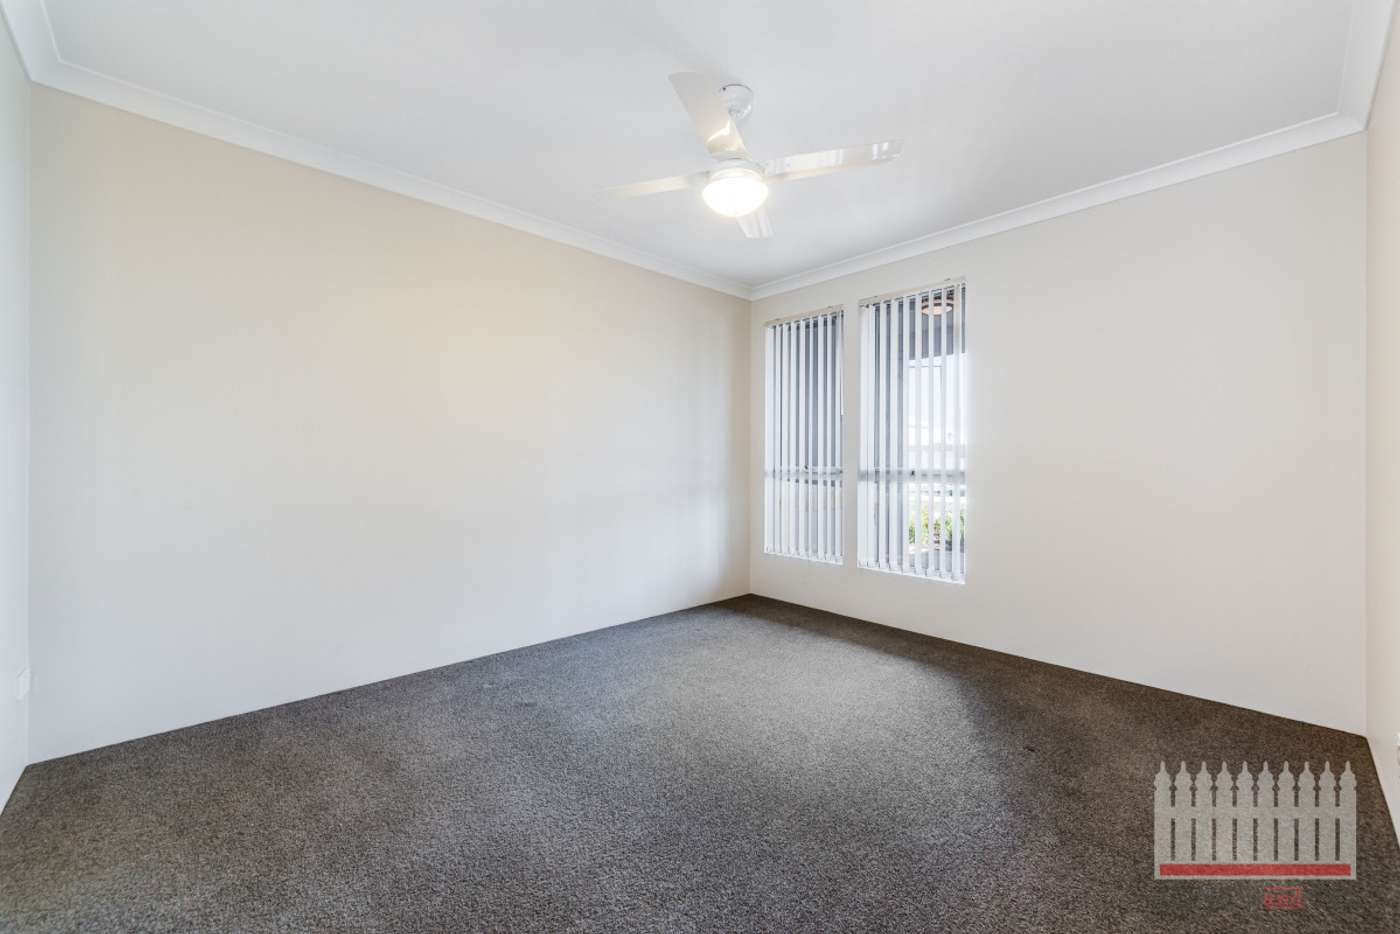 Seventh view of Homely villa listing, 24/12 Loder Way, South Guildford WA 6055